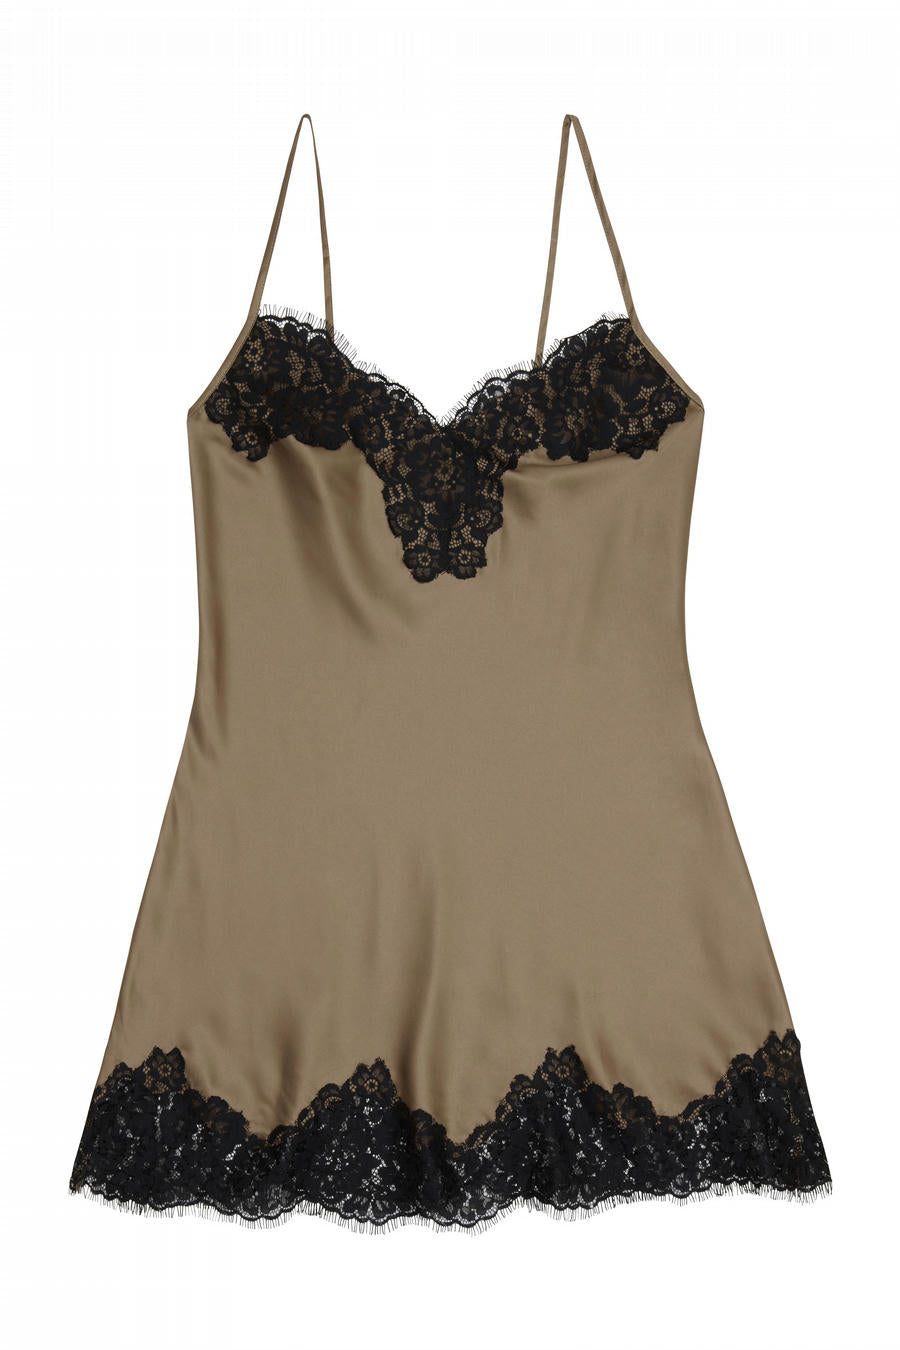 Cappuccino Silky Slip with Eyelash Lace Trim